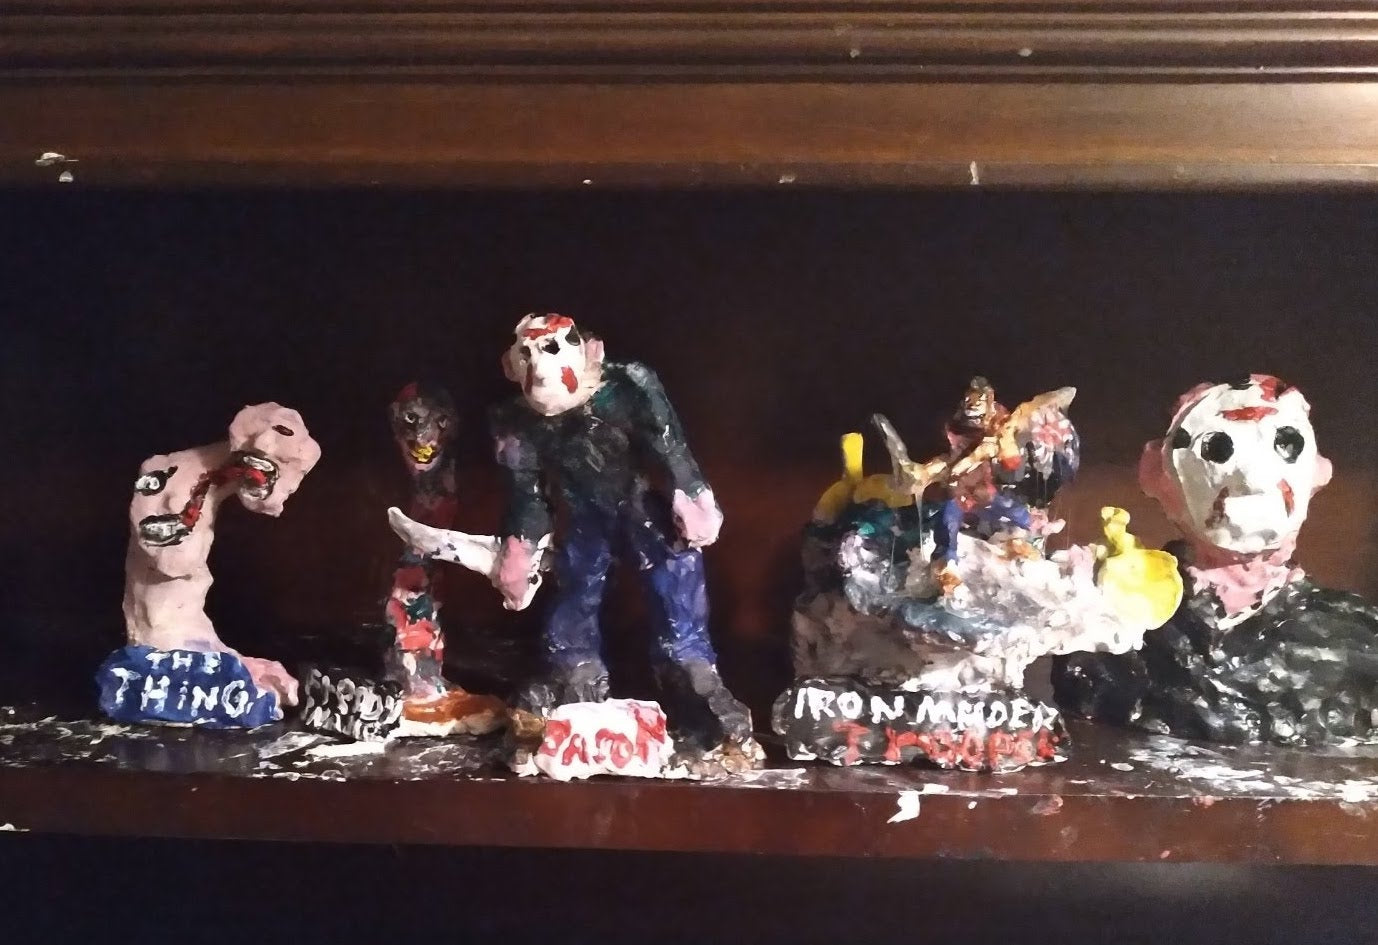 """a row of painted mixed-media sculptures lined up on a wooden shelf at the artist's home. Each sculpture depicts a different movie villain or metal band. On the far left is a sculpture of a figure with a long neck and a head that seems to be splitting in two. Text written on the base reads """"The Thing."""" To the right are sculptures of the head and neck of movie villain """"Freddie"""" from Nightmare on Elm street, with his yellow teeth and red and black striped shirt. In the center of the image is a sculpture of movie villain Jason from Friday the 13th: a person wearing a white hockey mask stained with blood, striding forward wielding a machete. To the right of Jason is a sculpture of what appears to be a group of figures on a rocky surface, labeled """"Iron Maiden."""" And finally, to the far right sits a larger bust of Jason, with a black shirt, pink skin, and the same blood stained hockey mask. The shelf is spotted with white paint."""